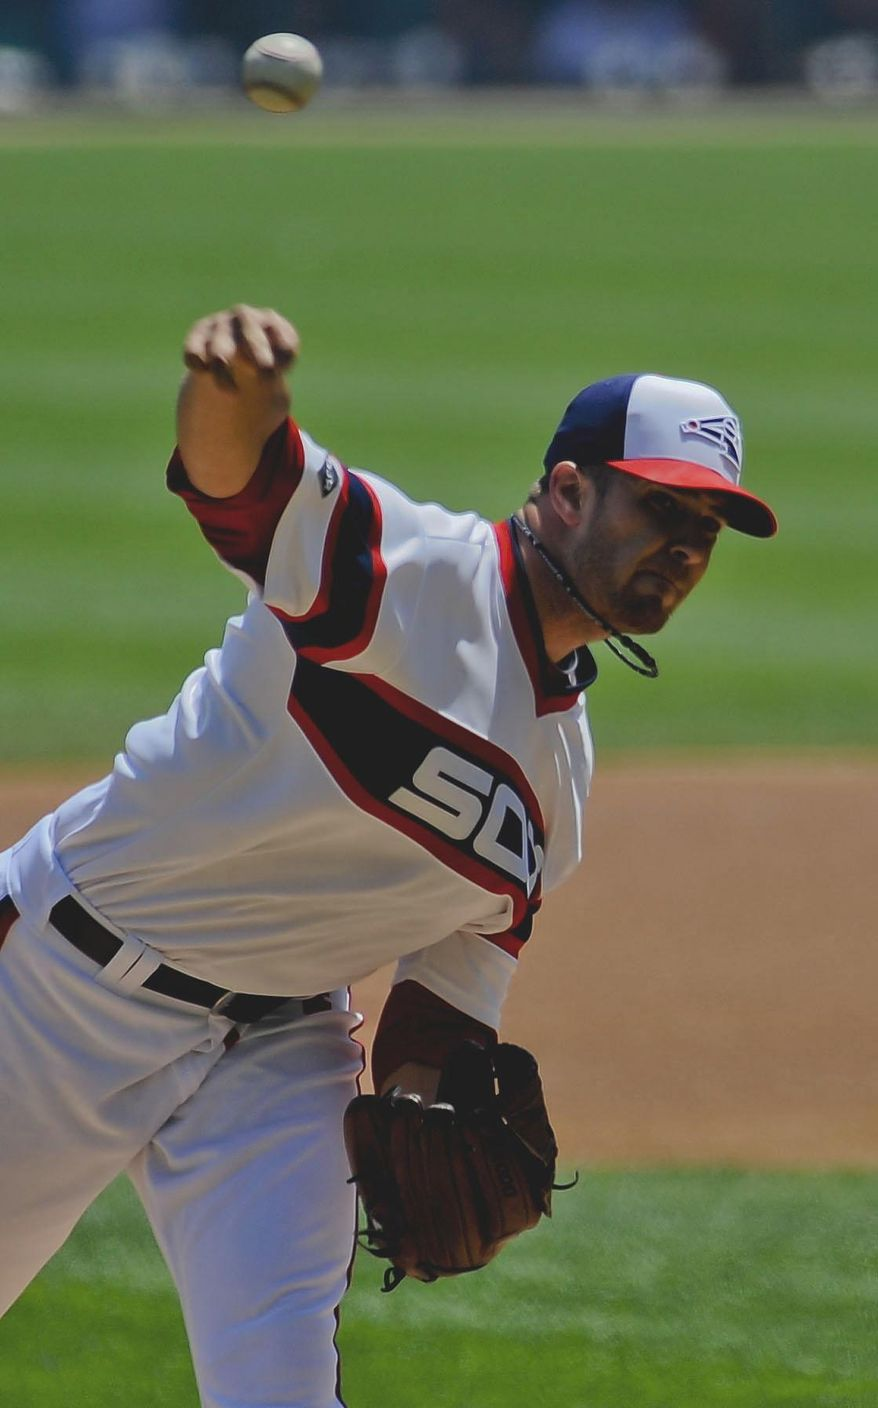 Chicago White Sox starting pitcher Andre Rienzo delivers during the first inning of an interleague baseball game against the San Diego Padres on Saturday, May 31, 2014, in Chicago. (AP Photo/Matt Marton)